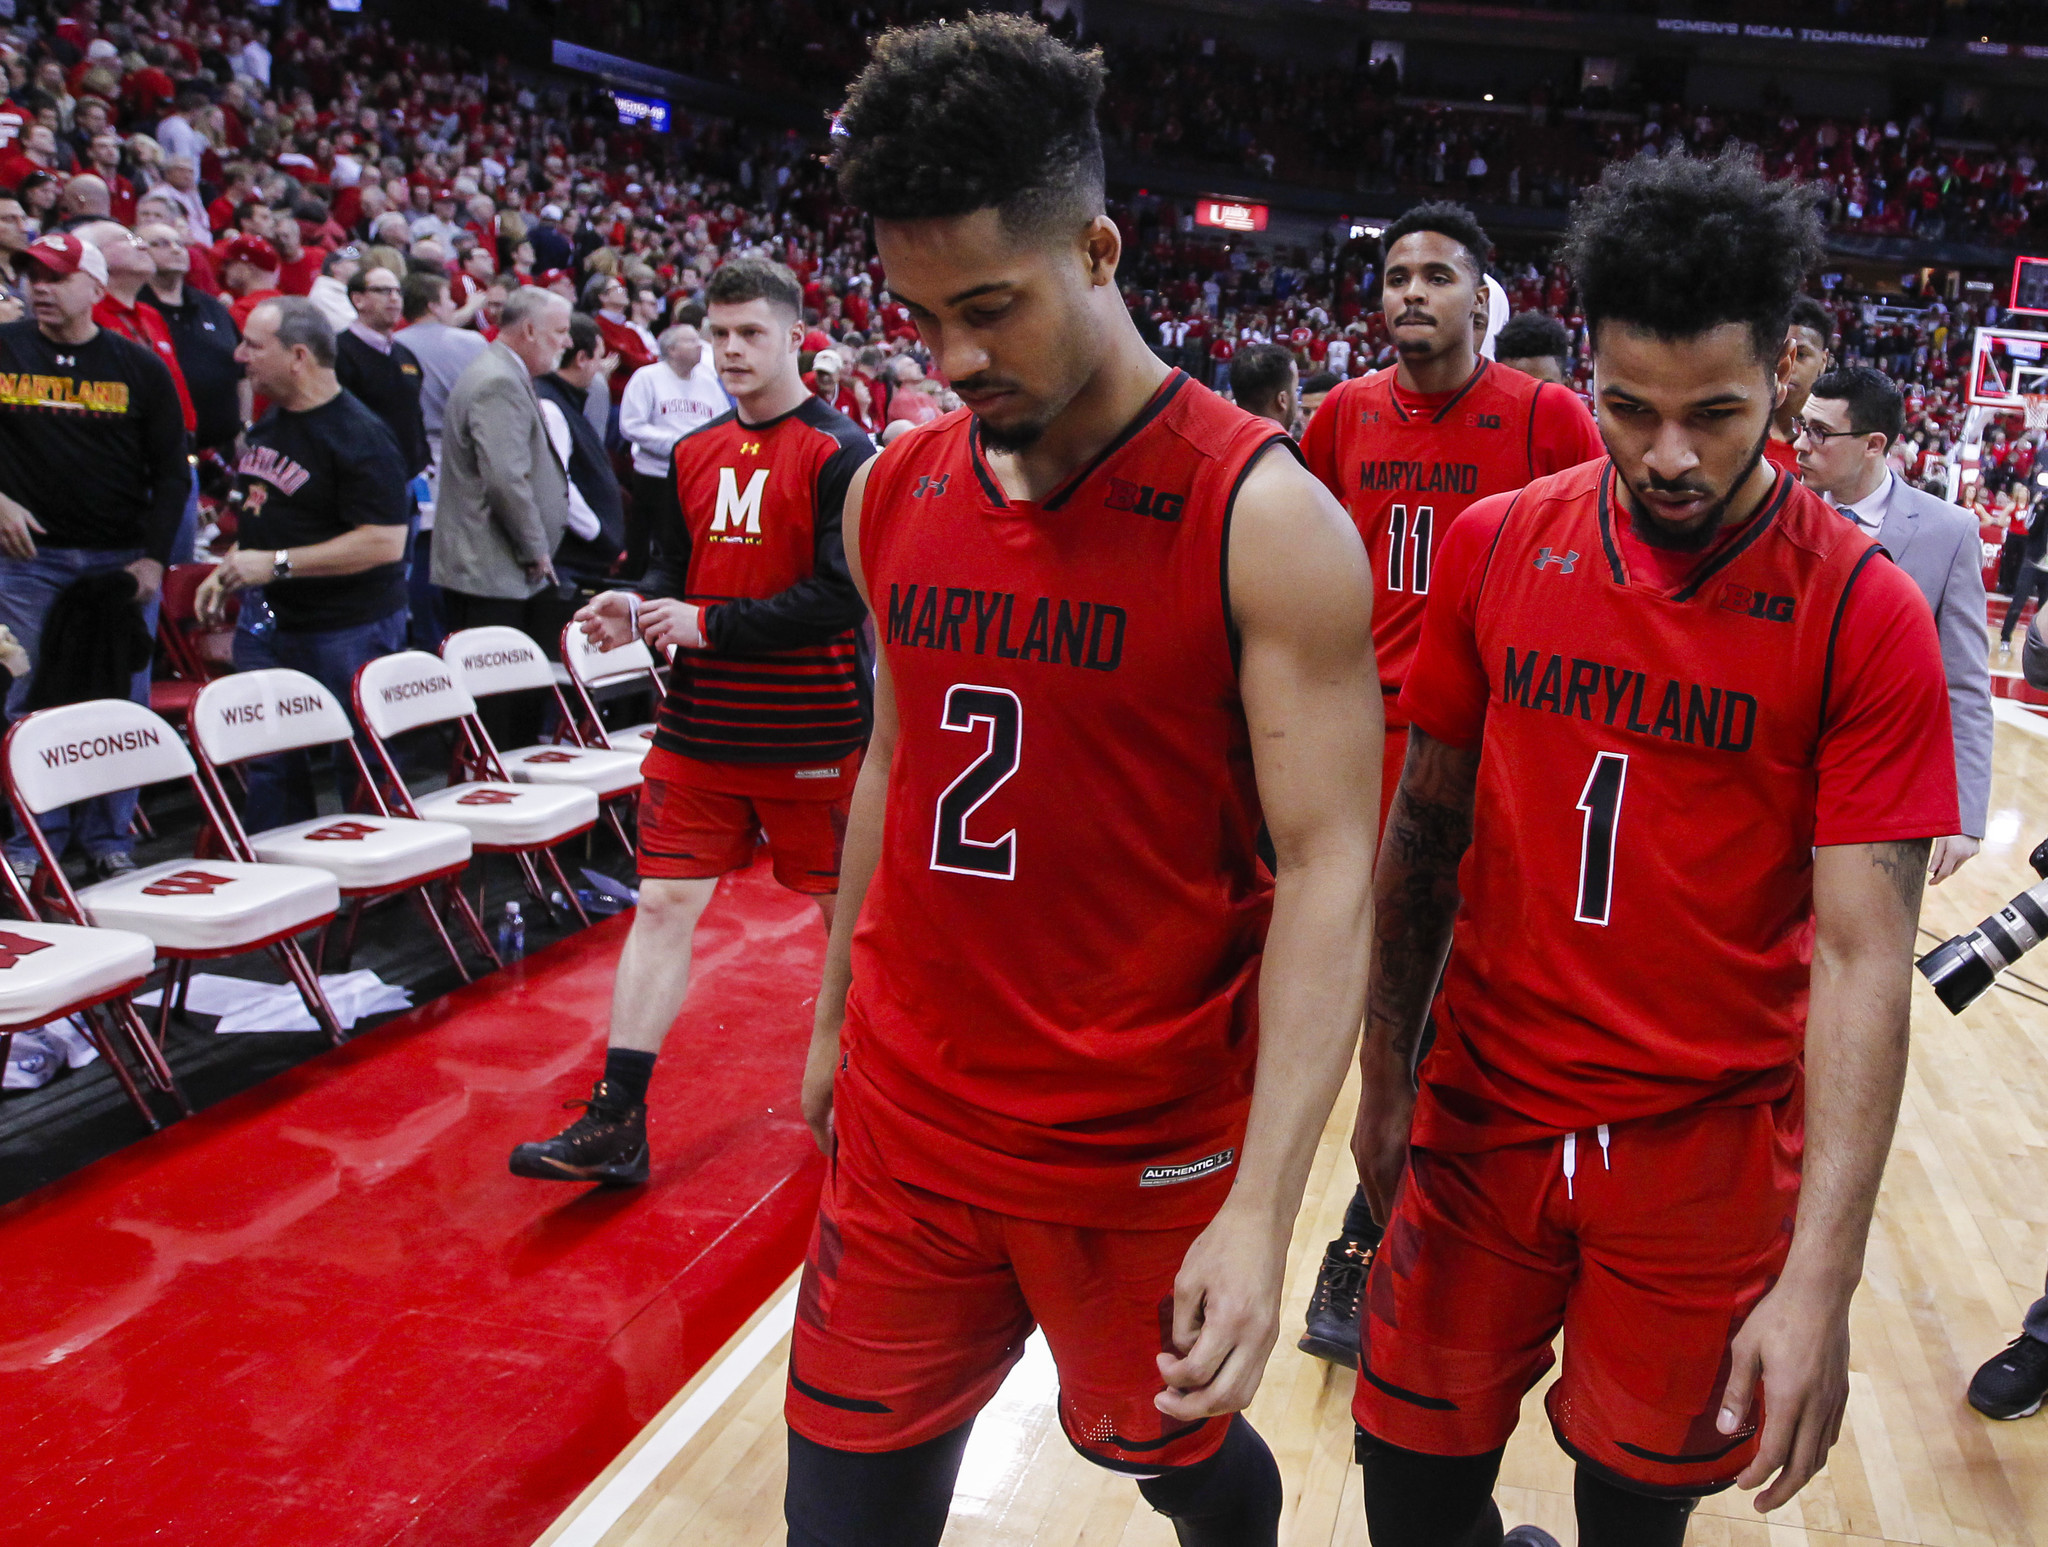 Bal-maryland-basketball-fades-in-second-half-loses-to-wisconsin-71-60-20170219